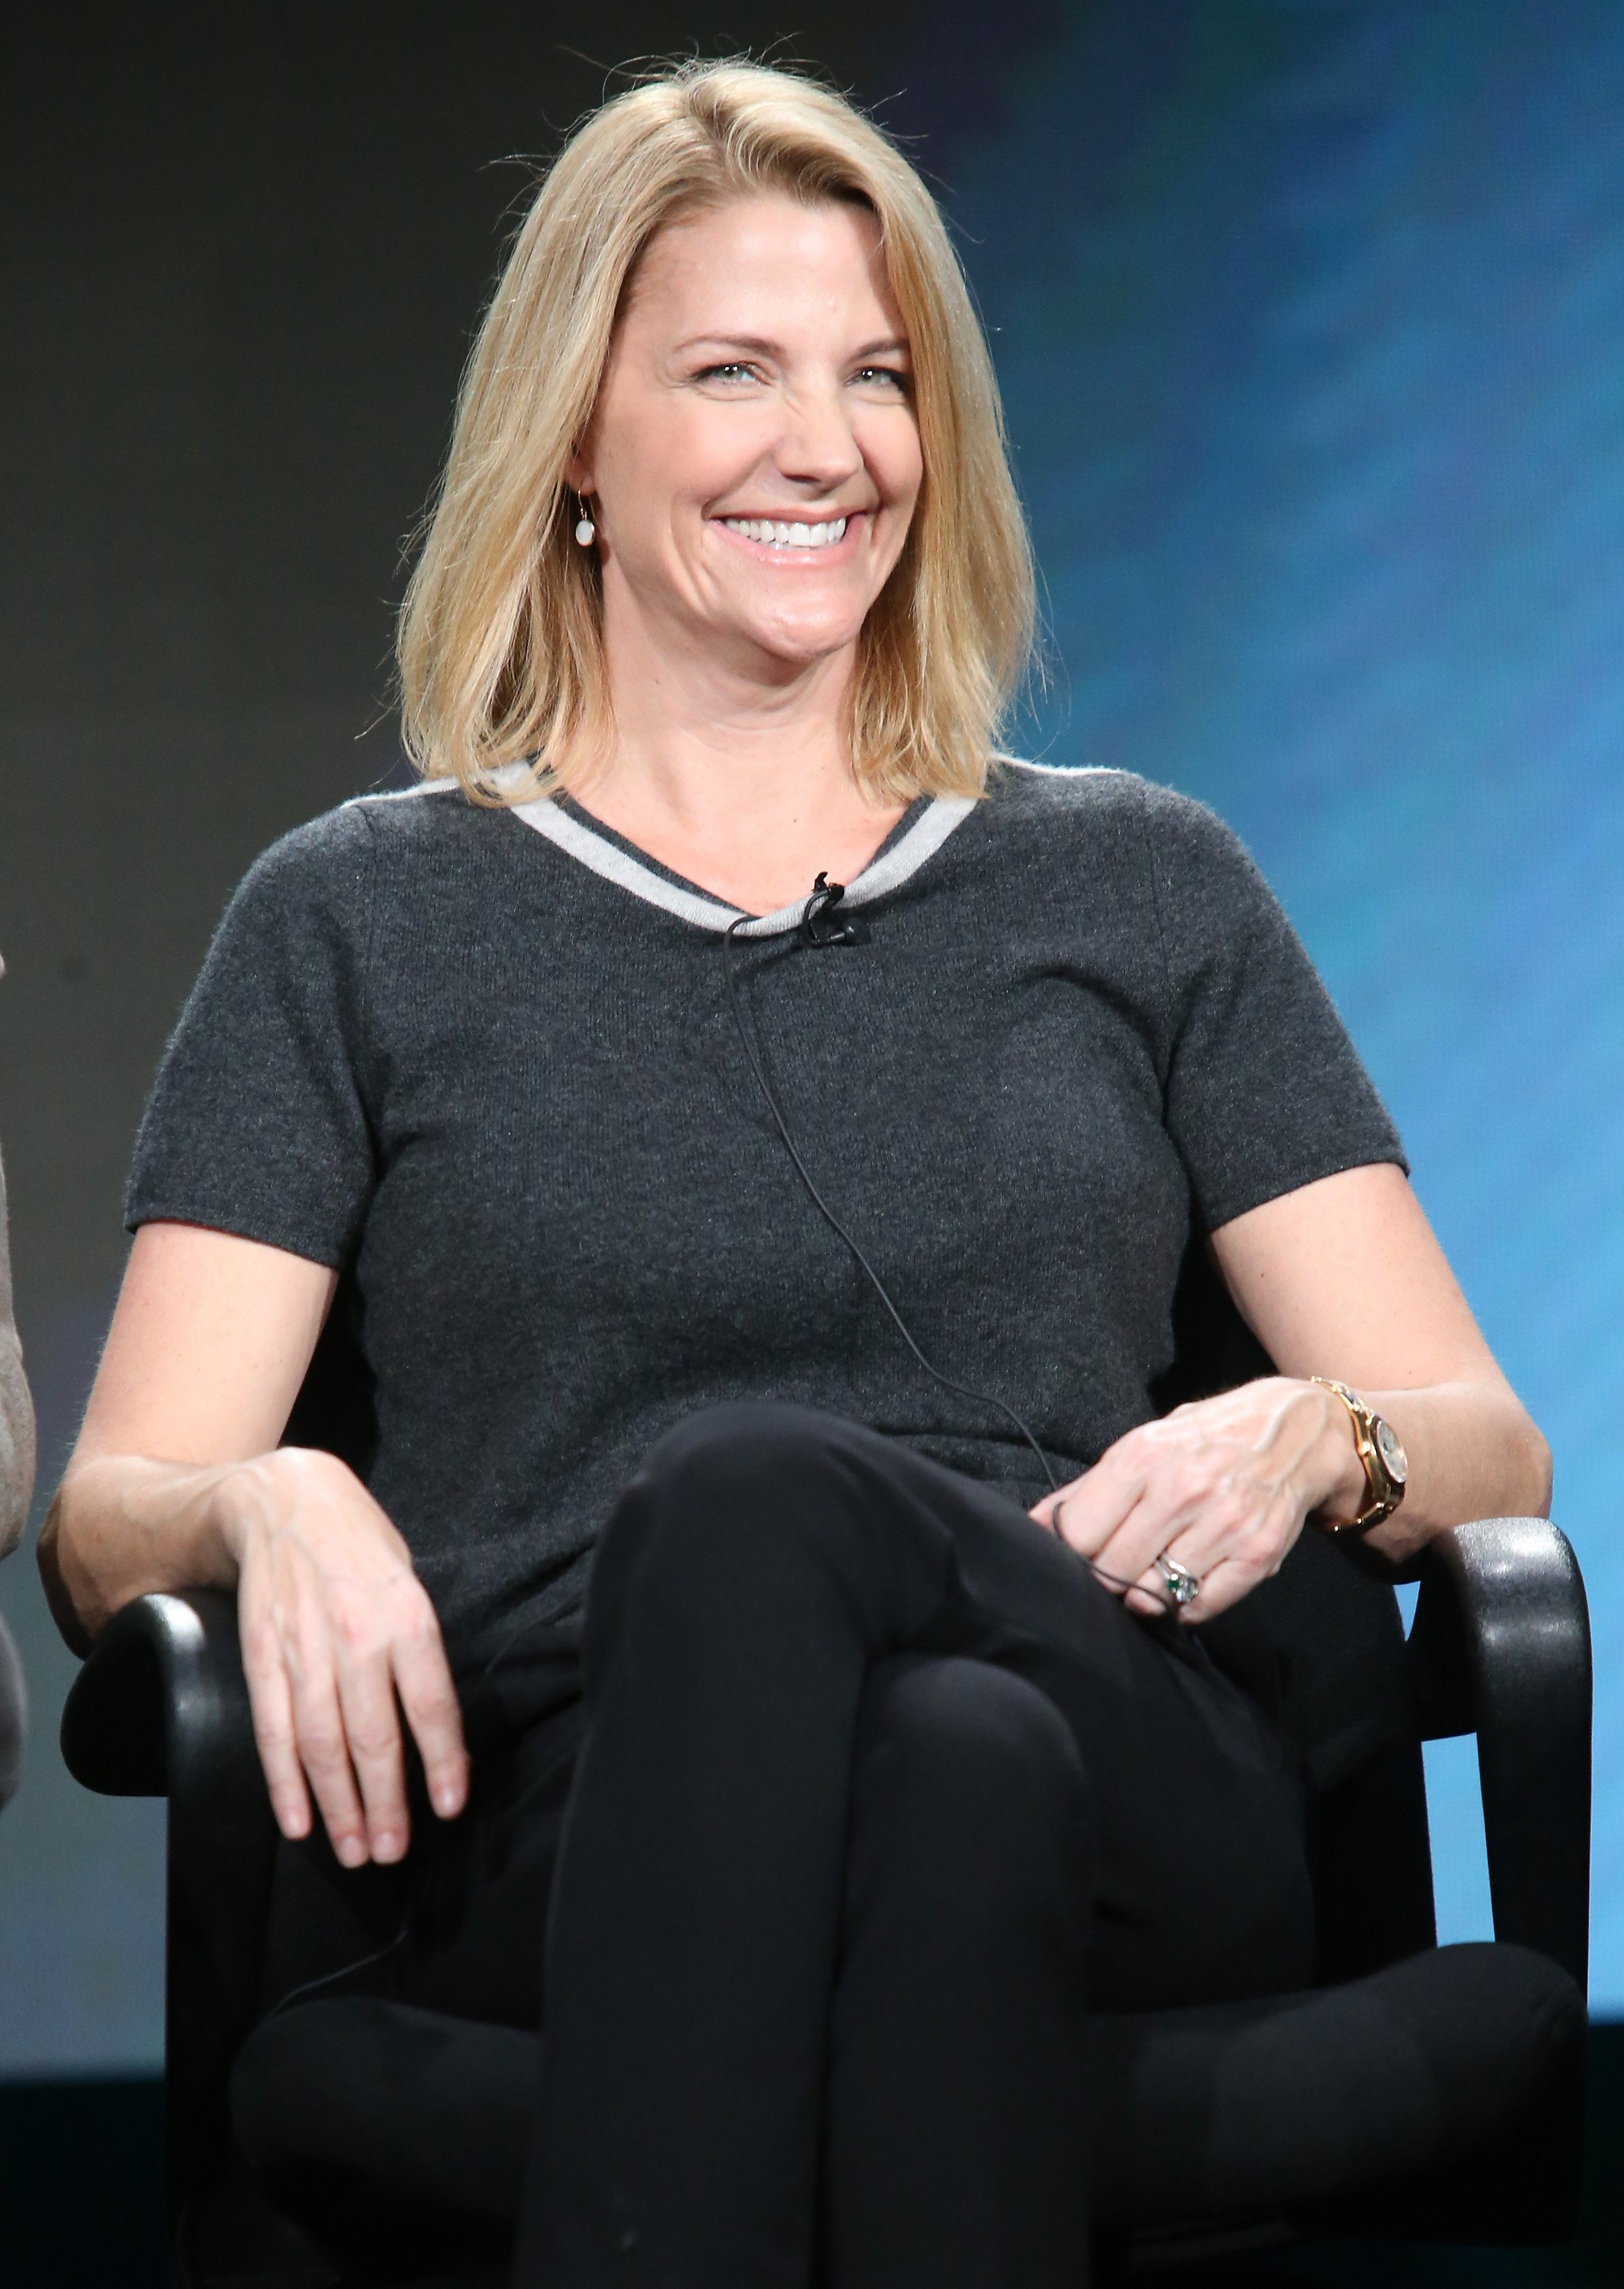 Nancy Carell during TBS's Angie Tribeca panel as part of the Turner Networks portion of This is Cable Television Critics Association Winter Tour at Langham Hotel on January 7, 2016 in Pasadena, California. | Photo: GettyImages